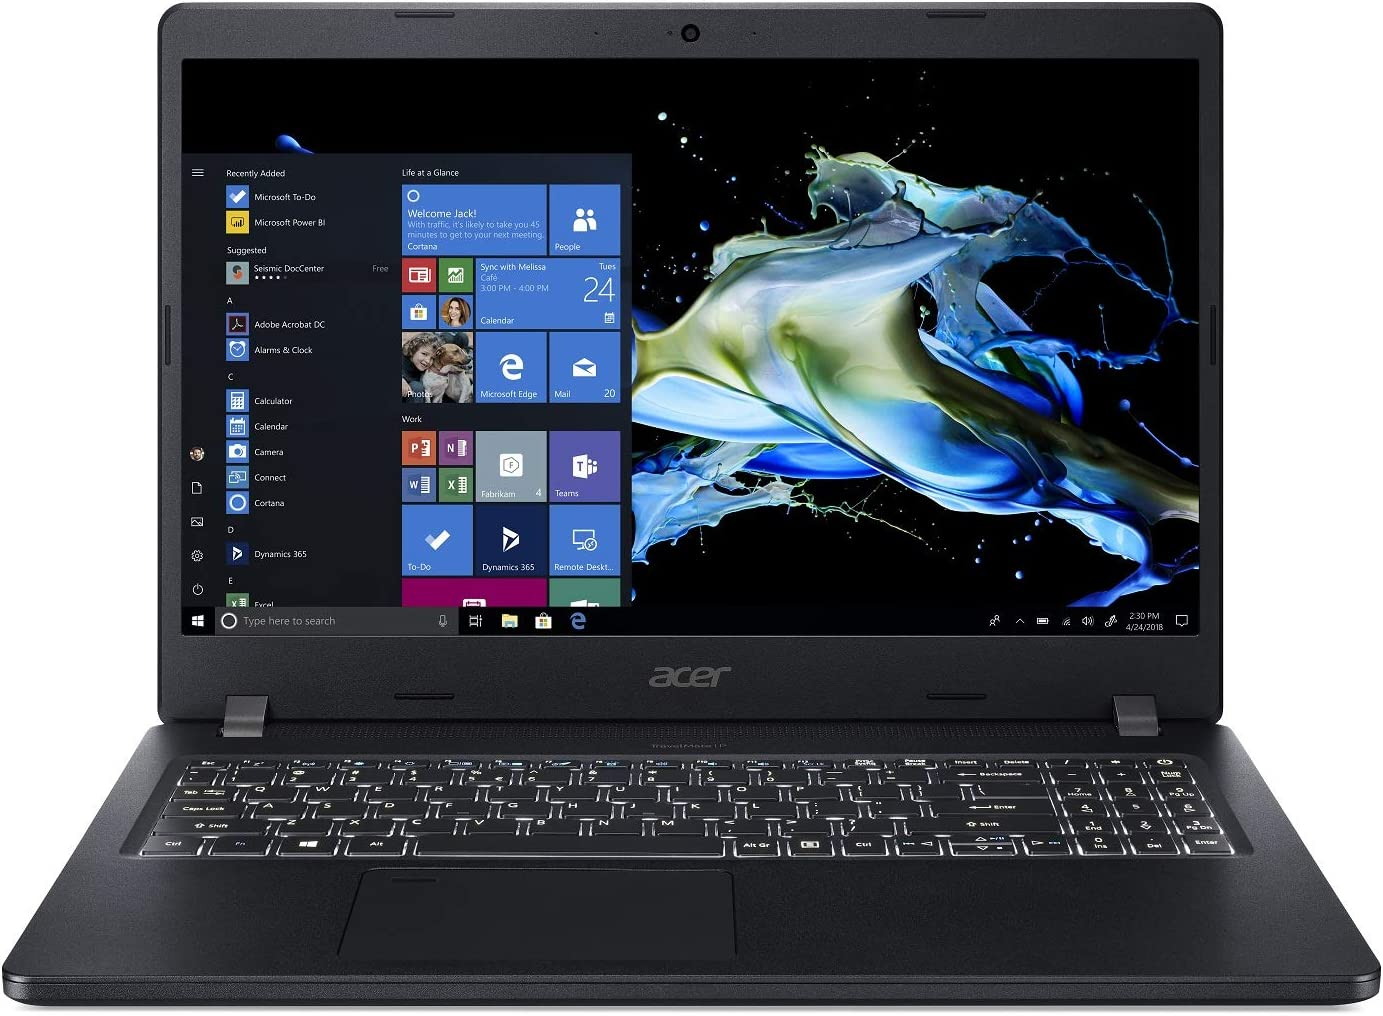 "Acer TravelMate P2 Business Laptop, 15.6"" FHD IPS, Intel Core i5-8250U, 8GB DDR4, 256GB SSD, 9.5 Hrs Battery, Win 10 Pro, TPM 2.0, Mil-Spec, Fingerprint Reader, TMP215-51-51RB"